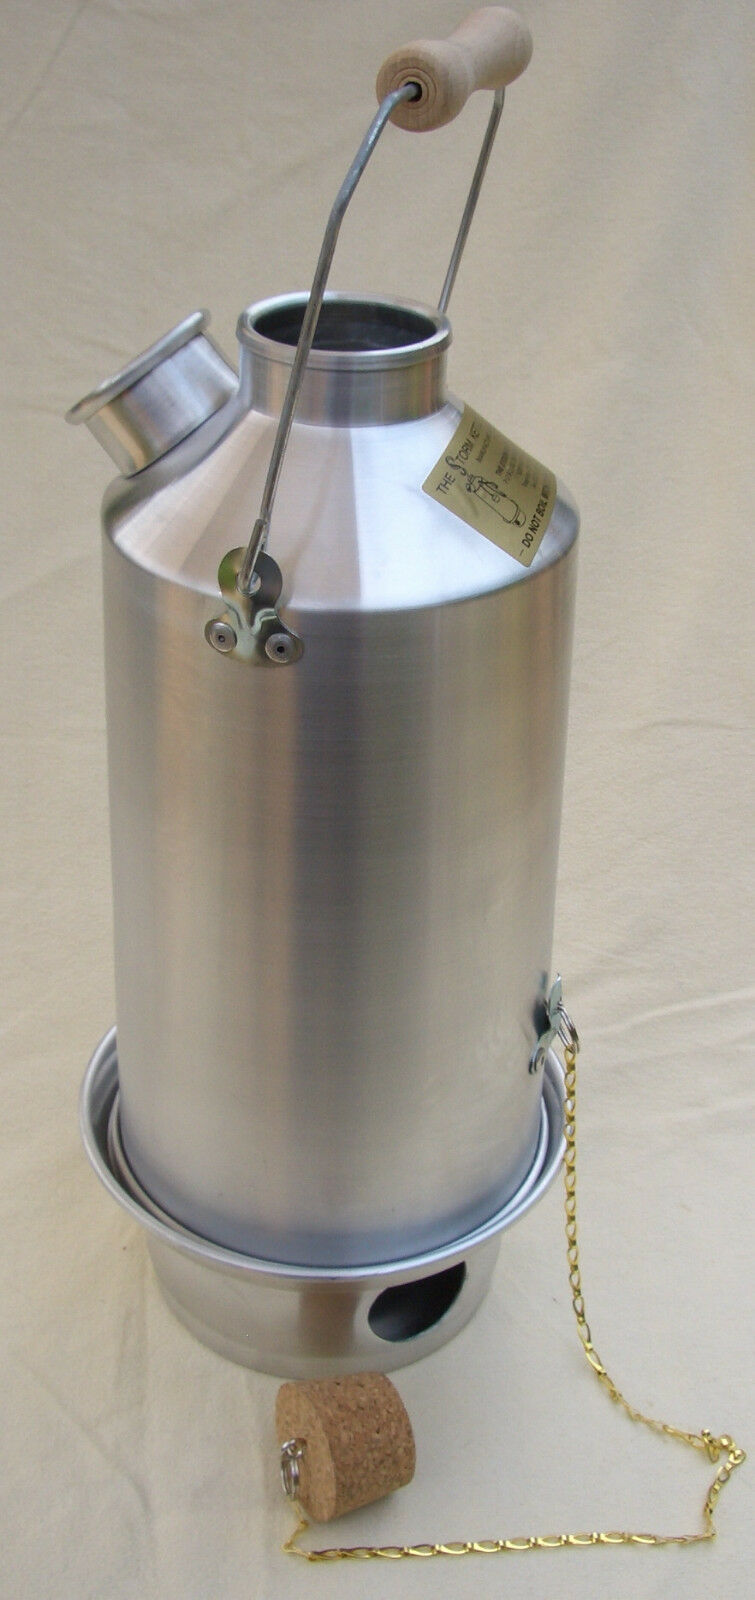 STORM Kettle,  Original  model 1.5 litre from manufacturer Eydon Kettle Co Ltd